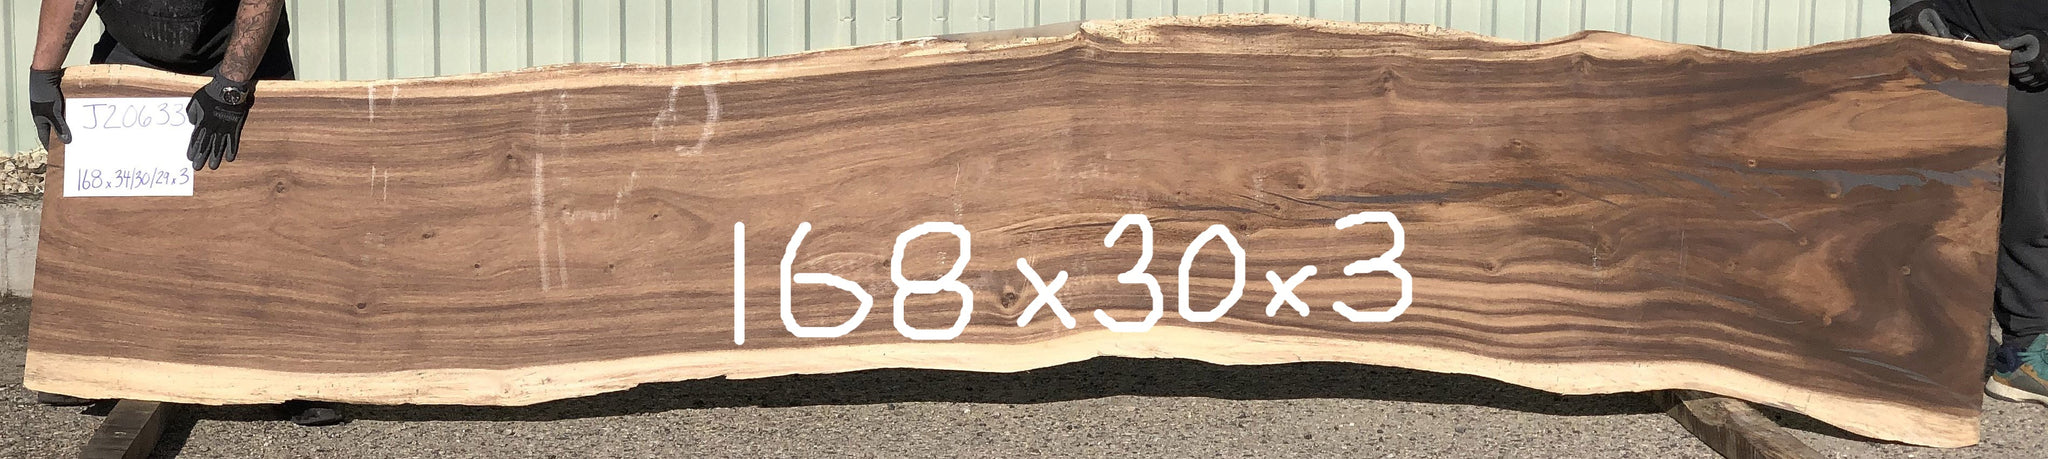 Sustainably Harvested Kiln Dried Natural live edge monkeypod or parota large wood slab Dining or conference table top from Impact Imports in Boise Idaho.